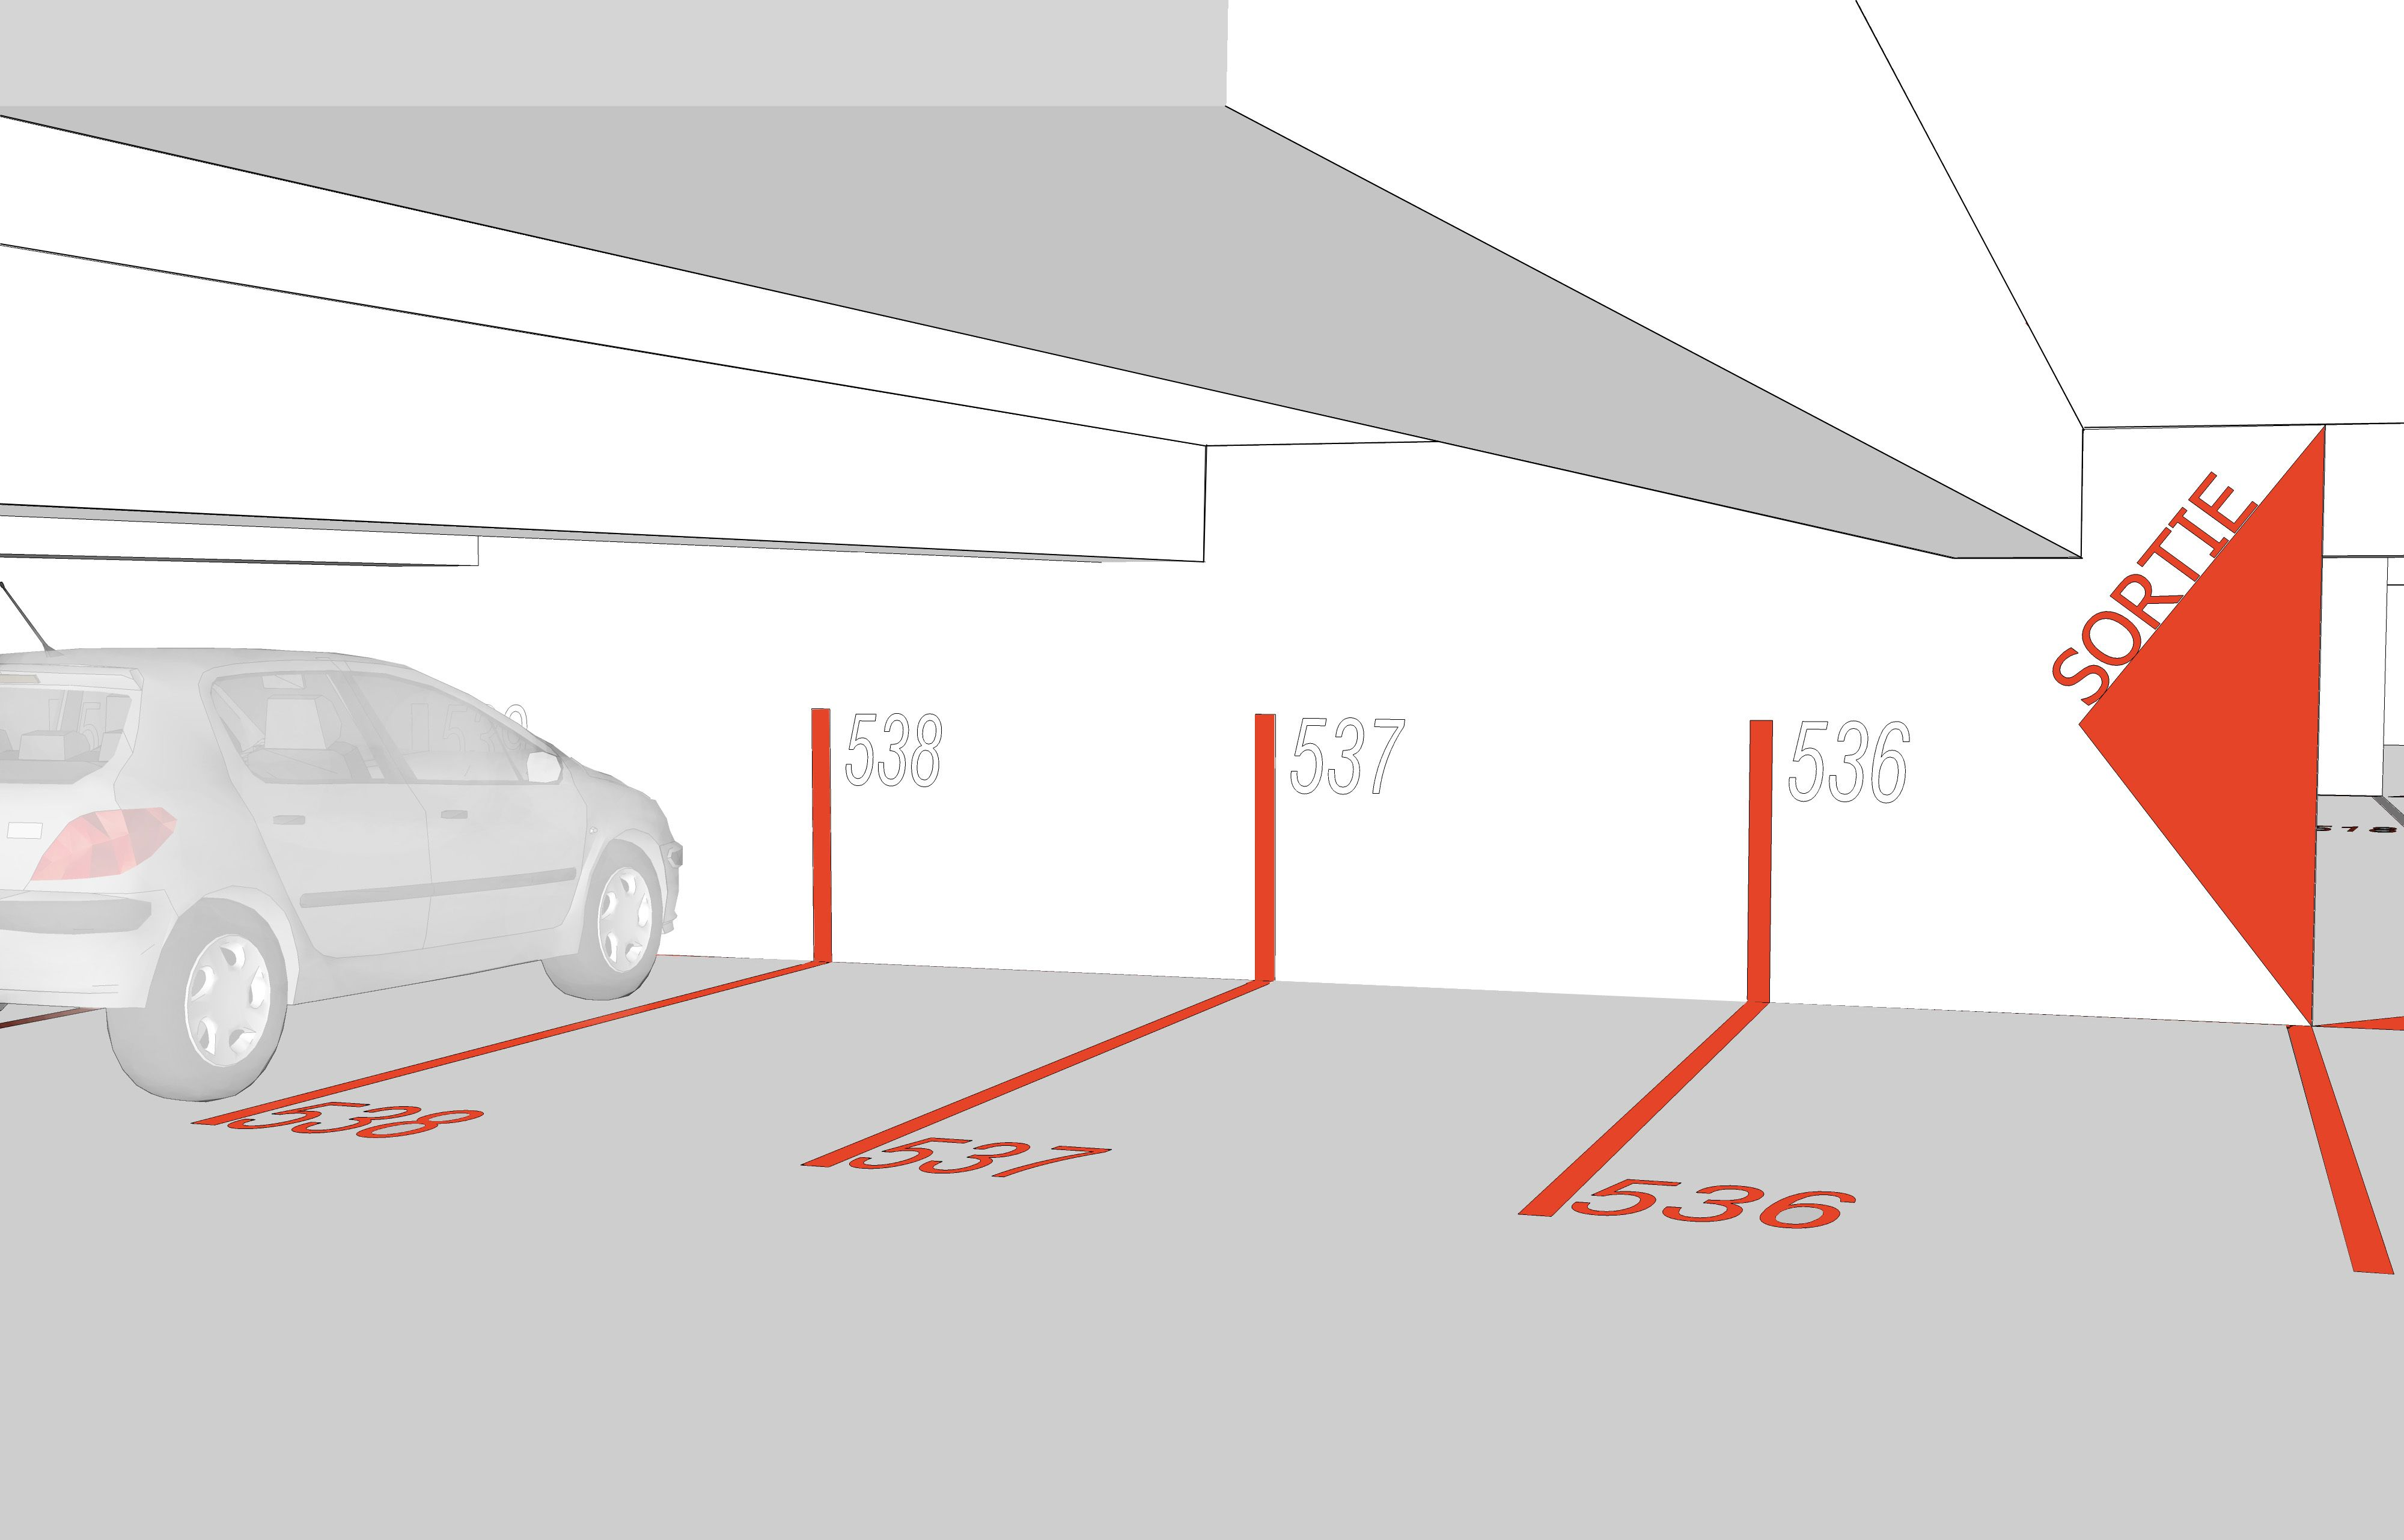 Graphics Calling Out Parking Garage And Bike Room With Arrow Pointing To Street Level Mit Bildern Tiefgarage